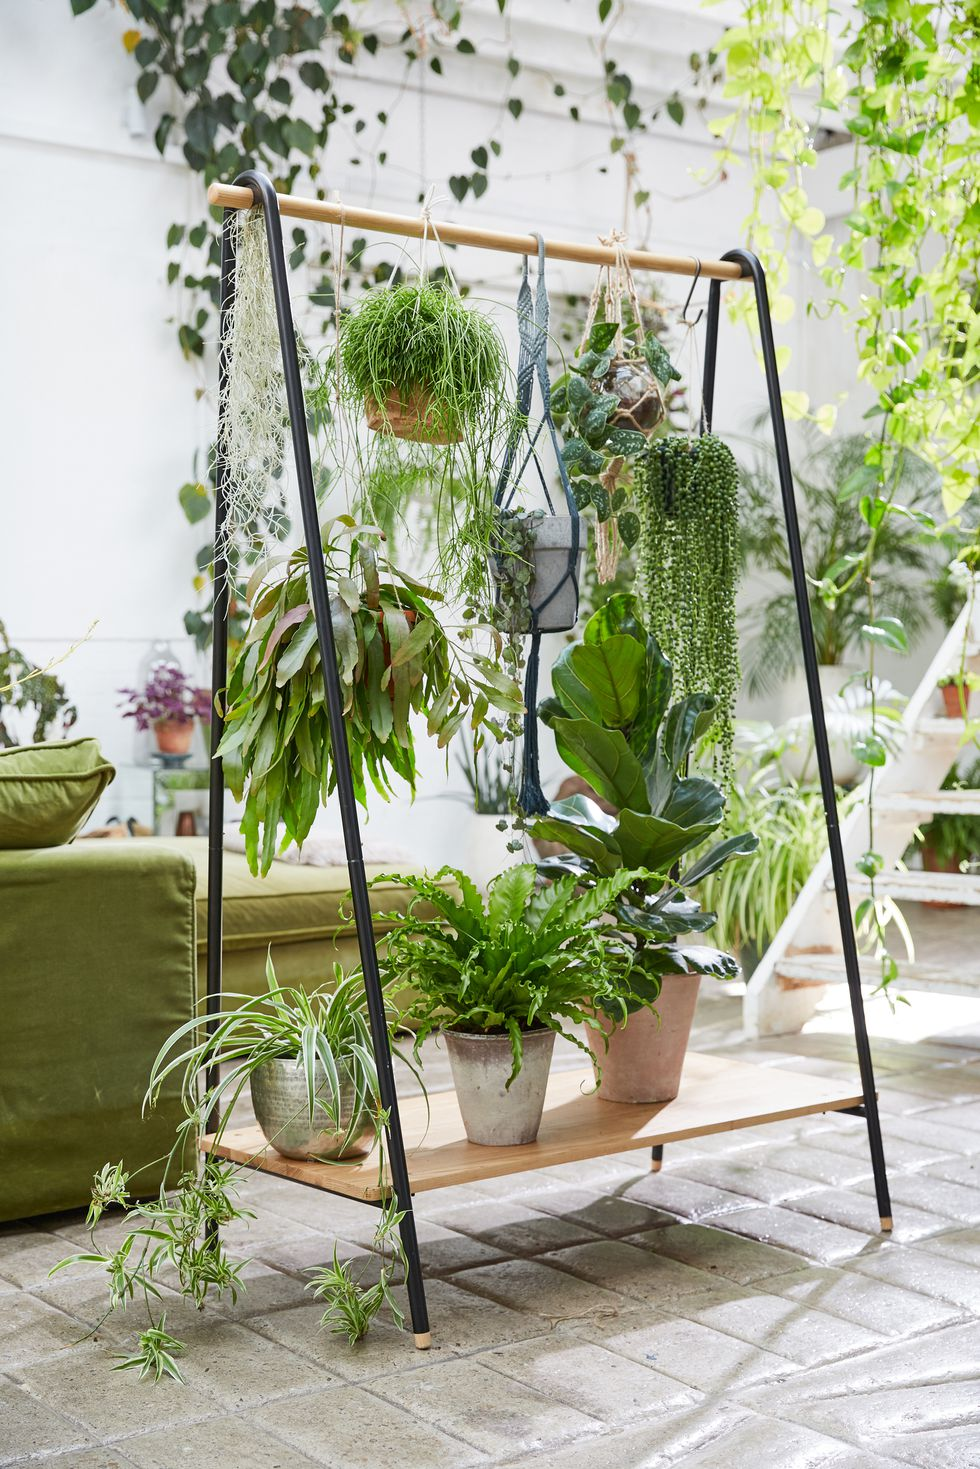 Isn't this a great idea?! An old clothes rack transformed into a room divider with hanging and standing plants. I almost wish I had not disposed of the old rack I had in my studio: It did not make the last move…. Source: Elle Decor (US)